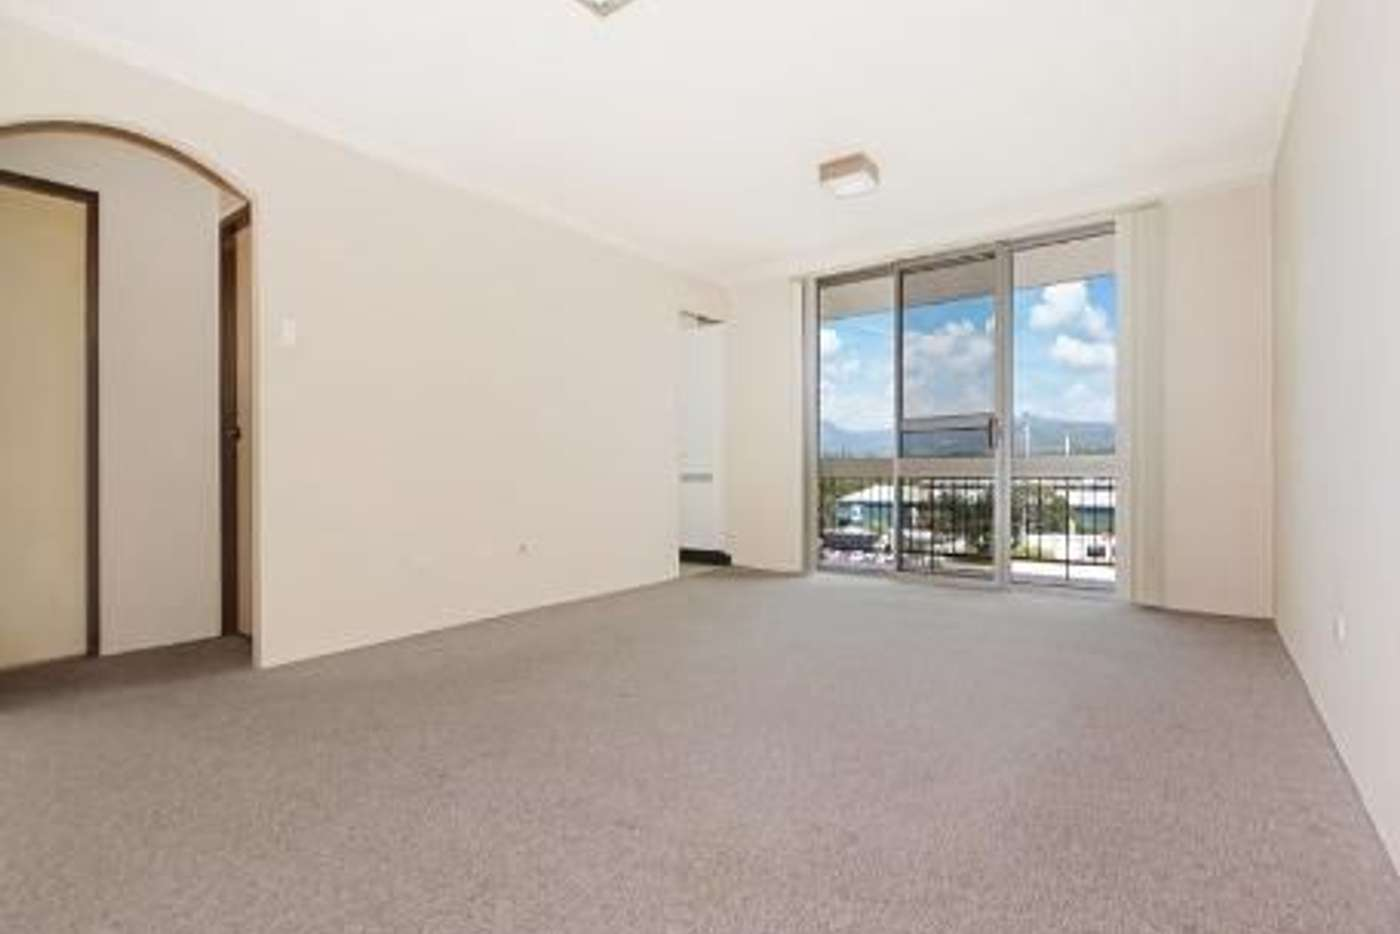 Main view of Homely unit listing, 25/46-48 Keira Street, Wollongong NSW 2500